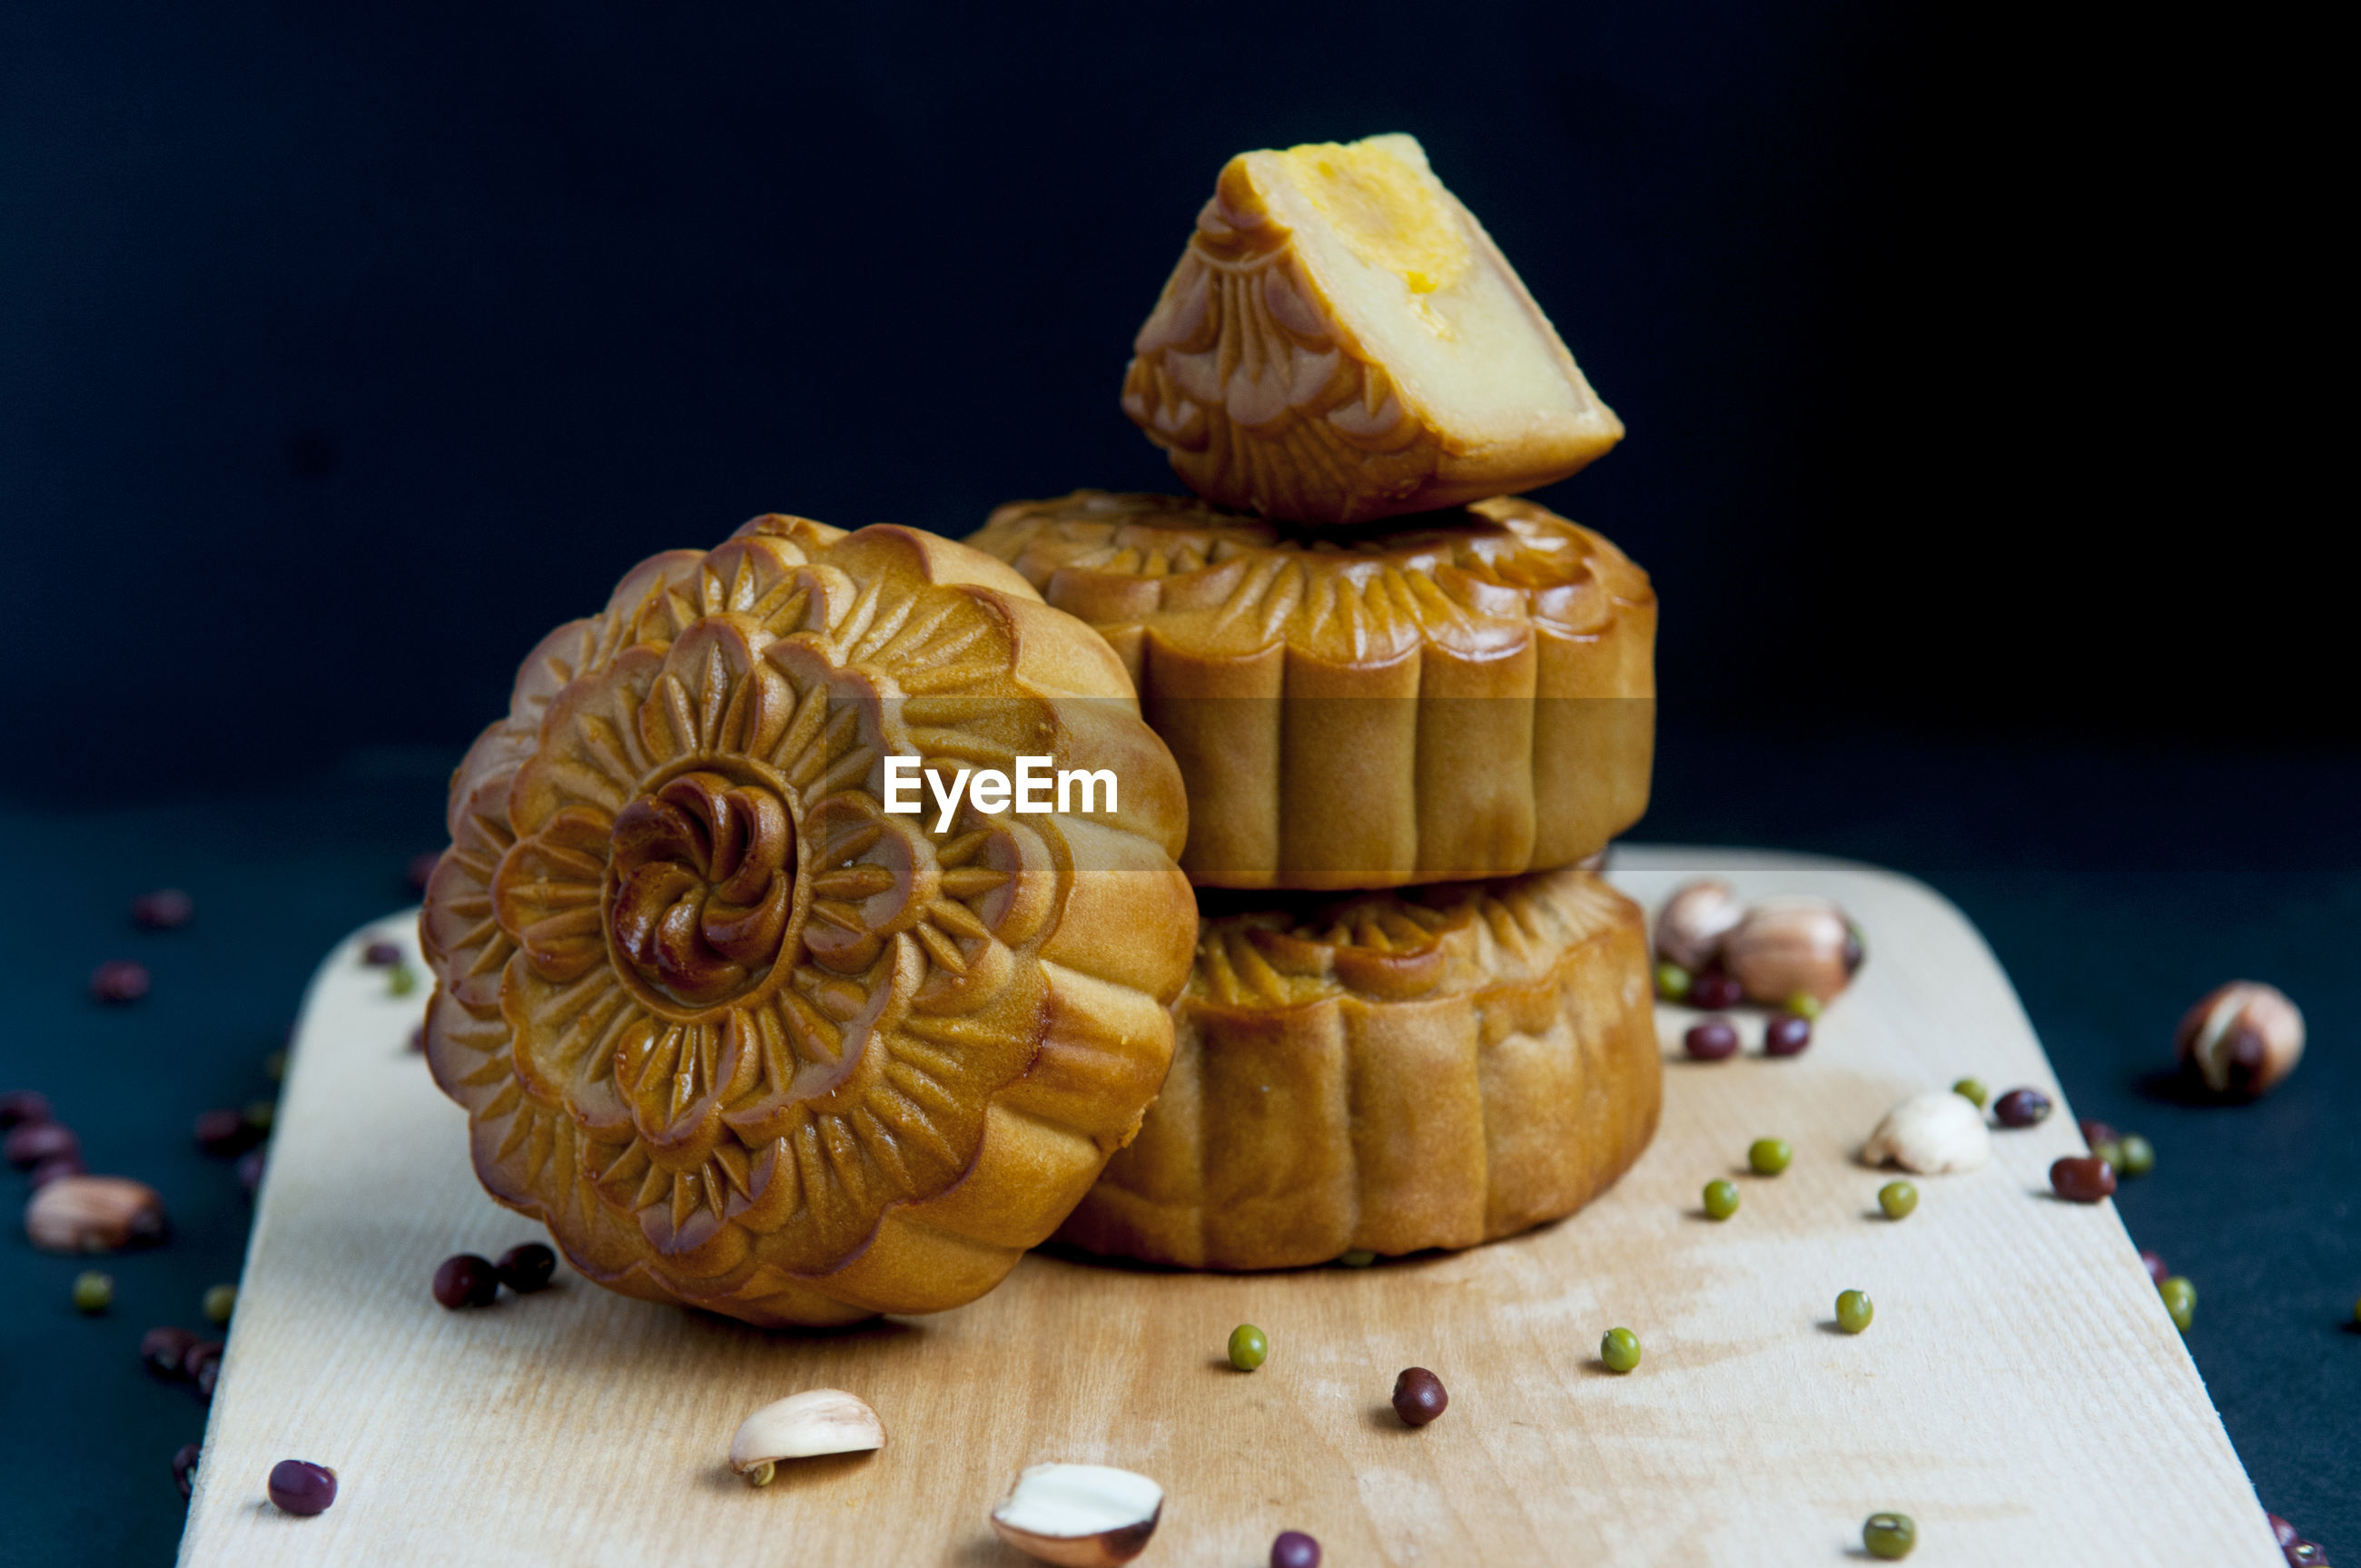 Close-up of moon cakes with seeds on serving board against black background